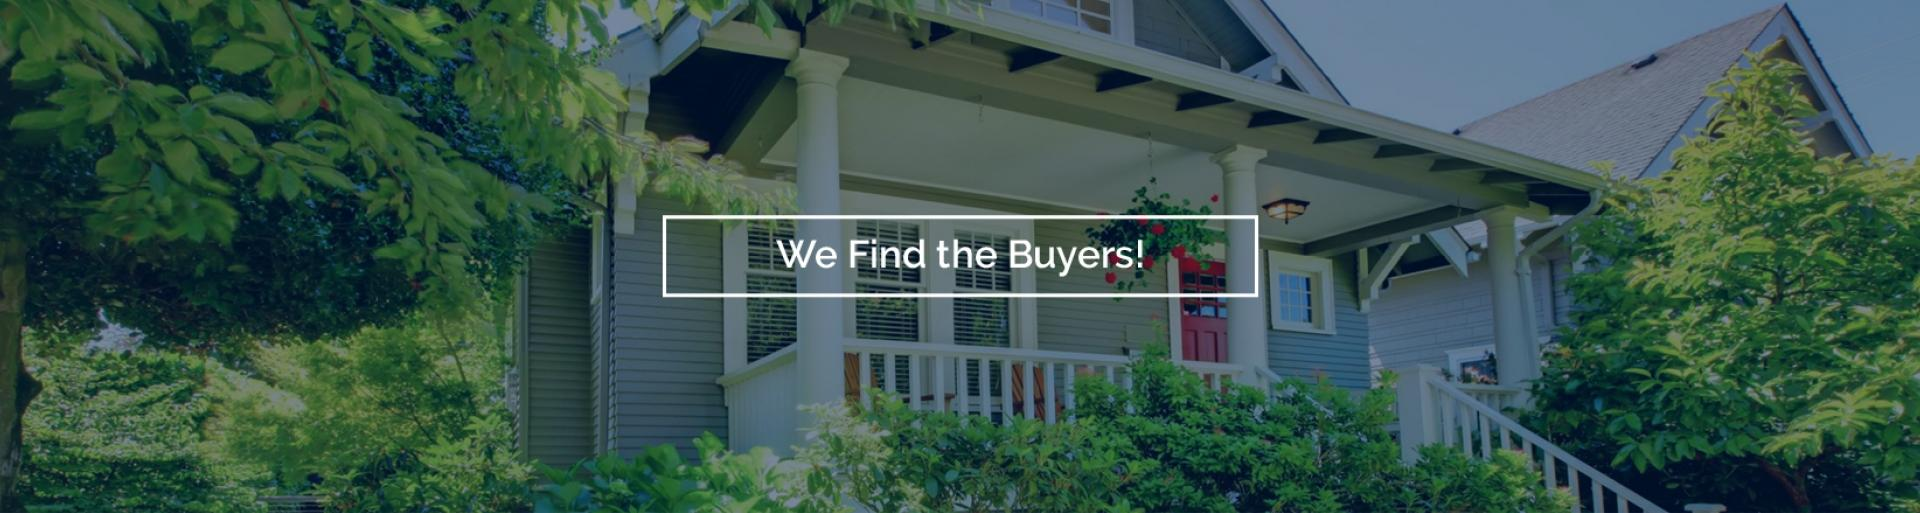 We Find the Buyers!